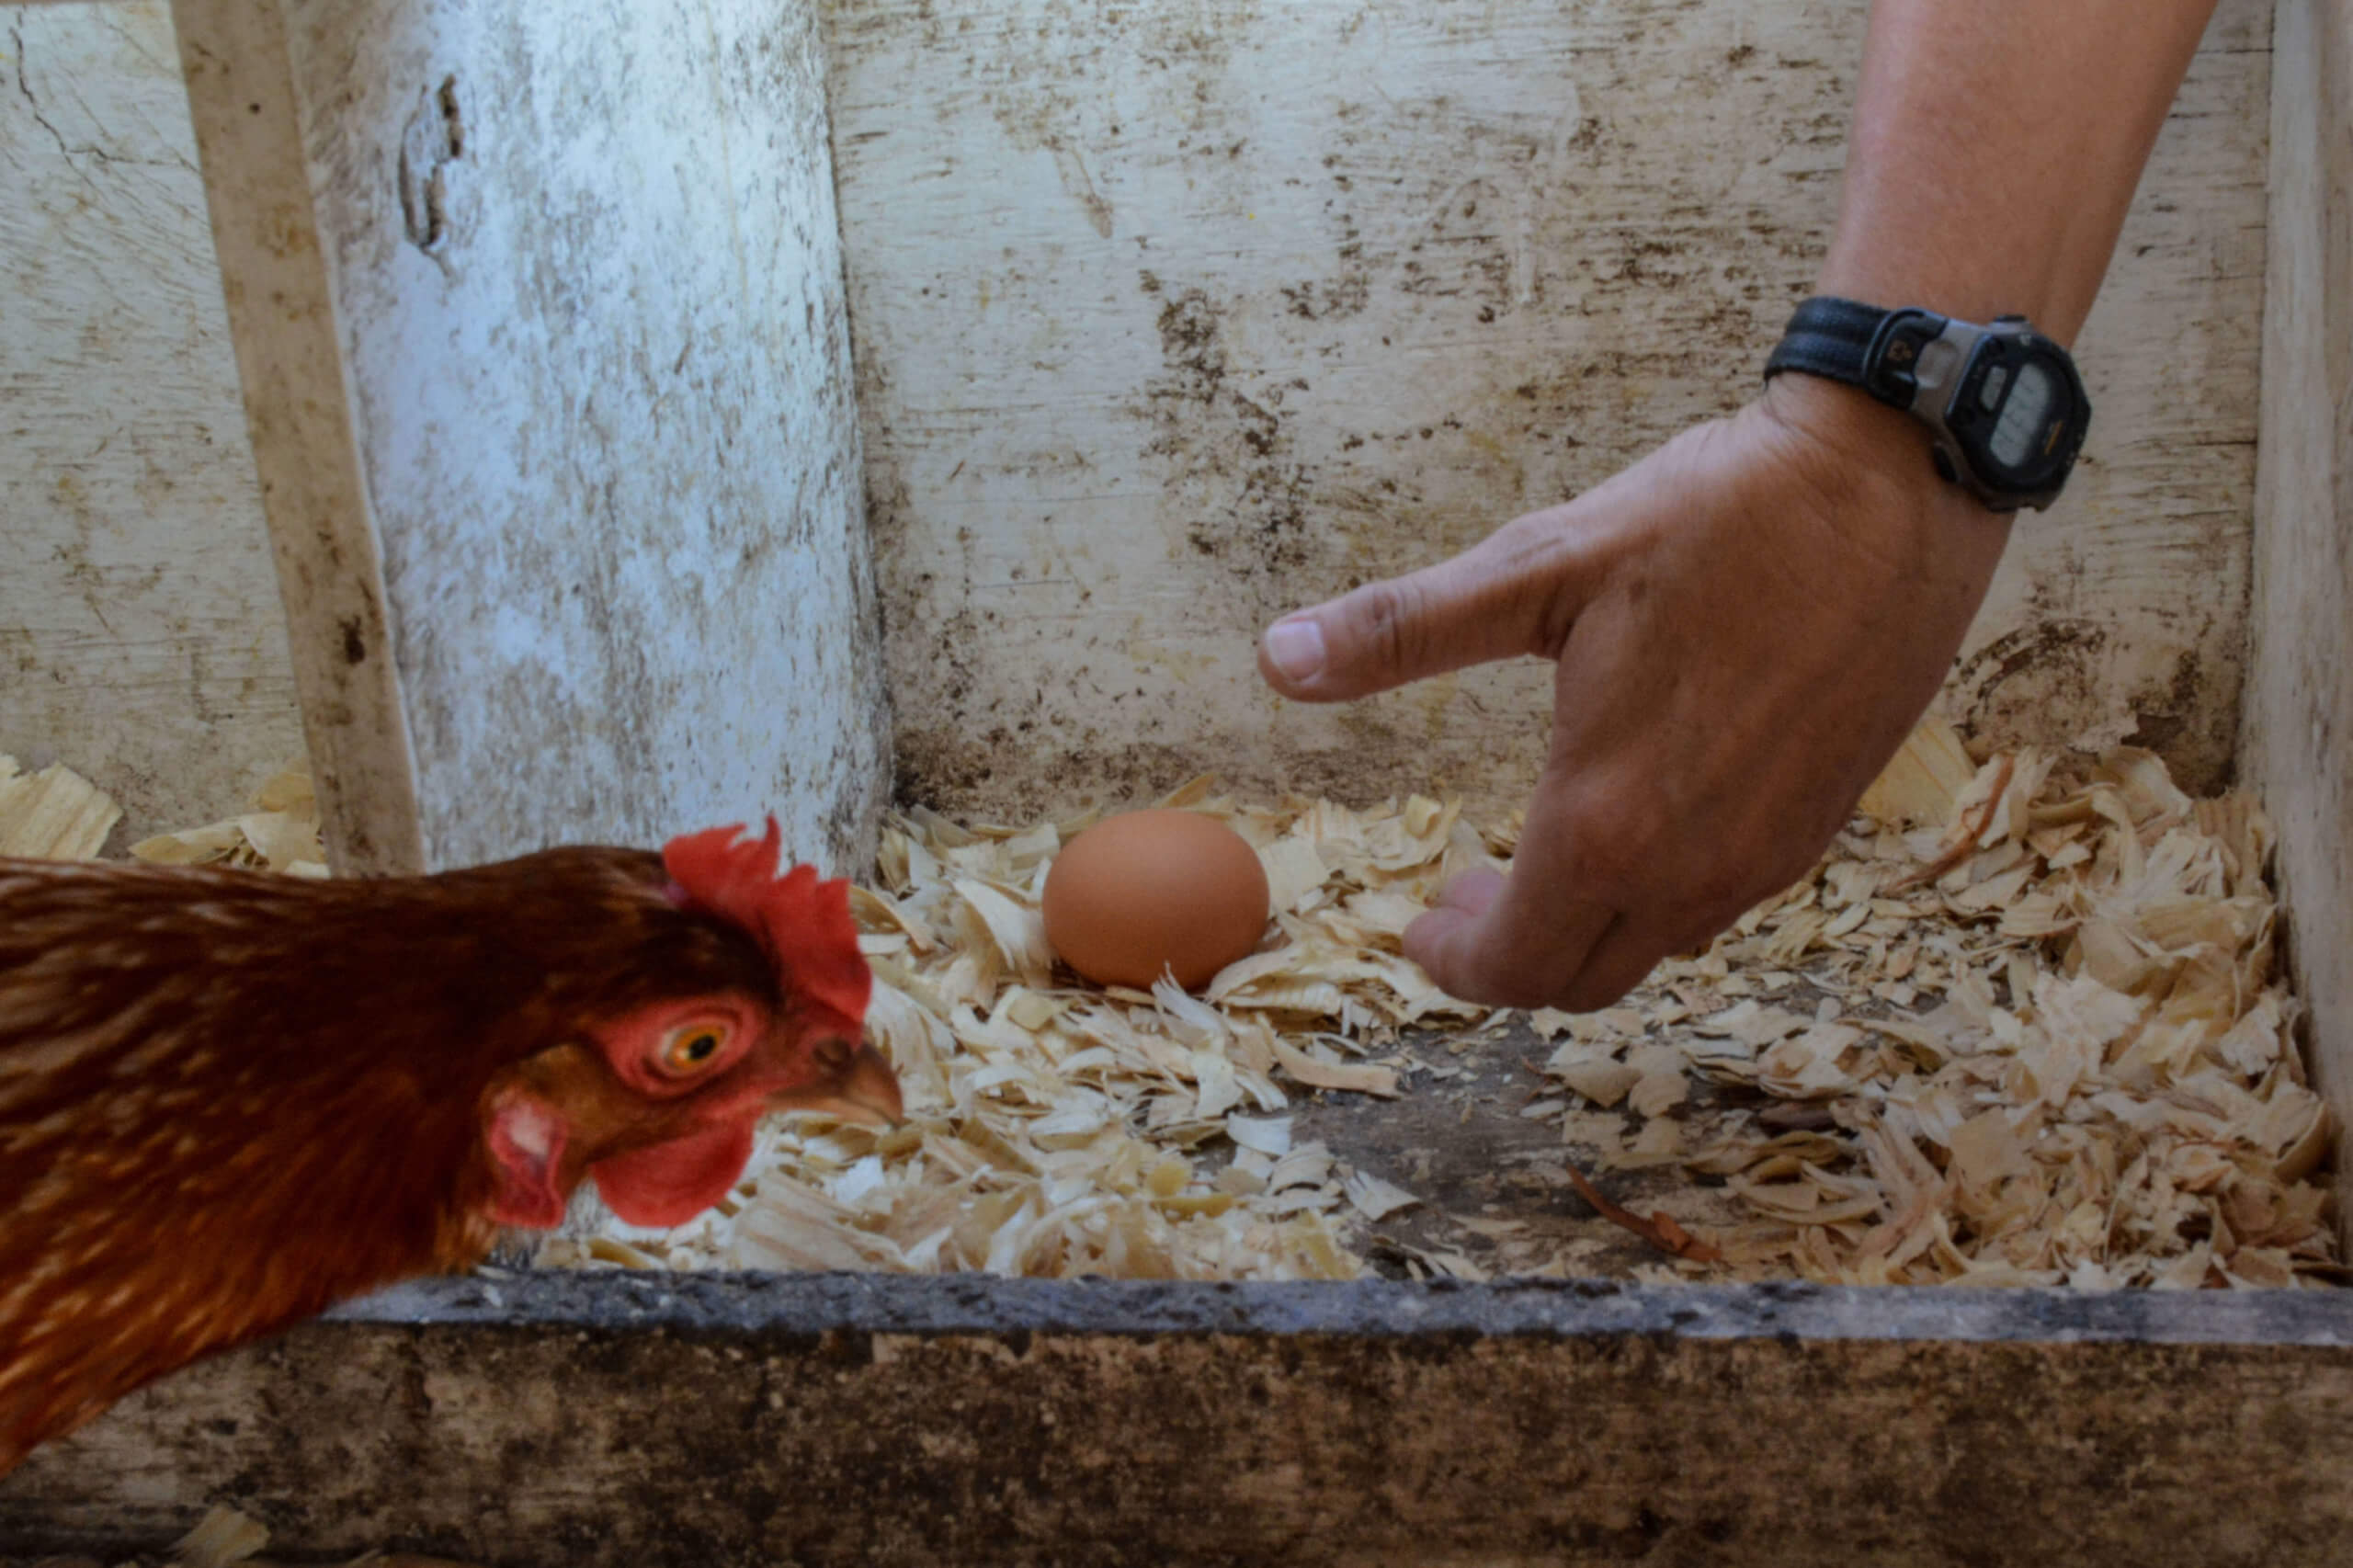 A hand picking up an egg while a chicken watches from nearby